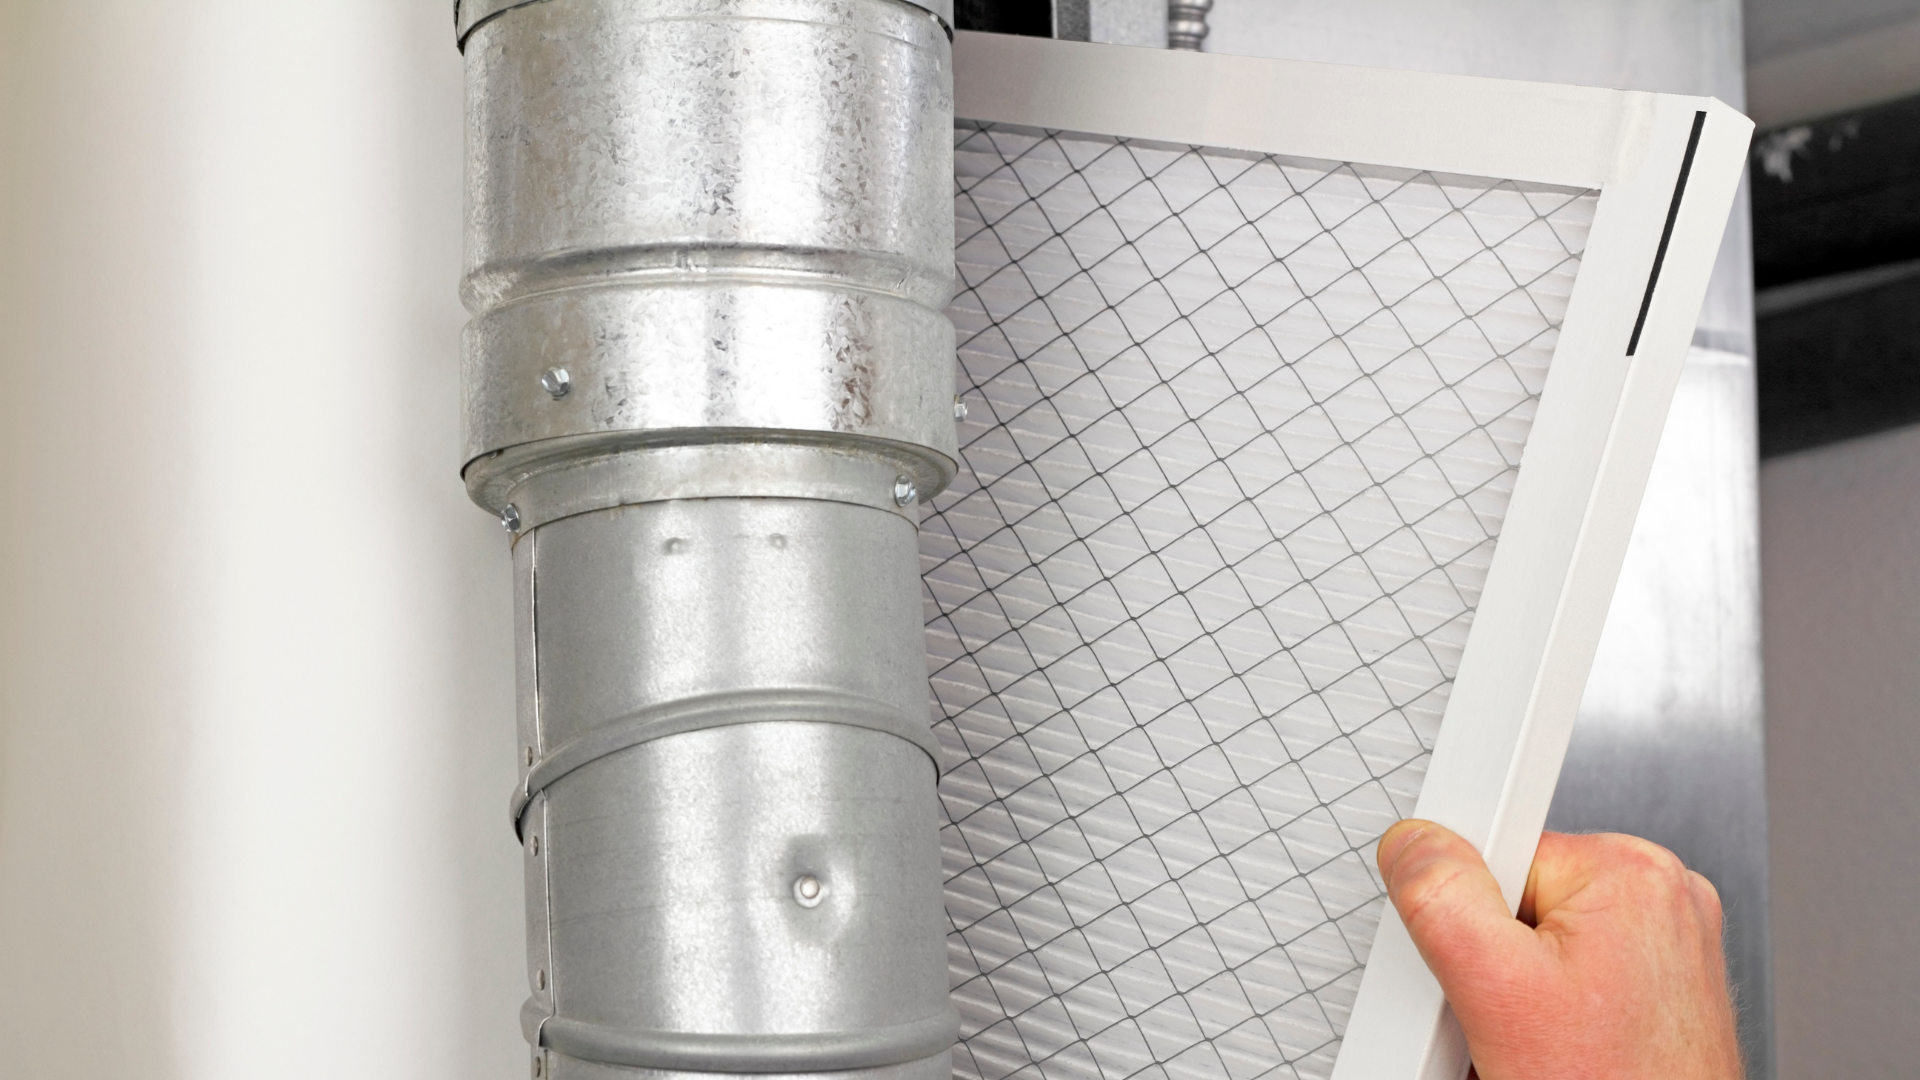 kma electric and heating & cooling technician changing furnace filter